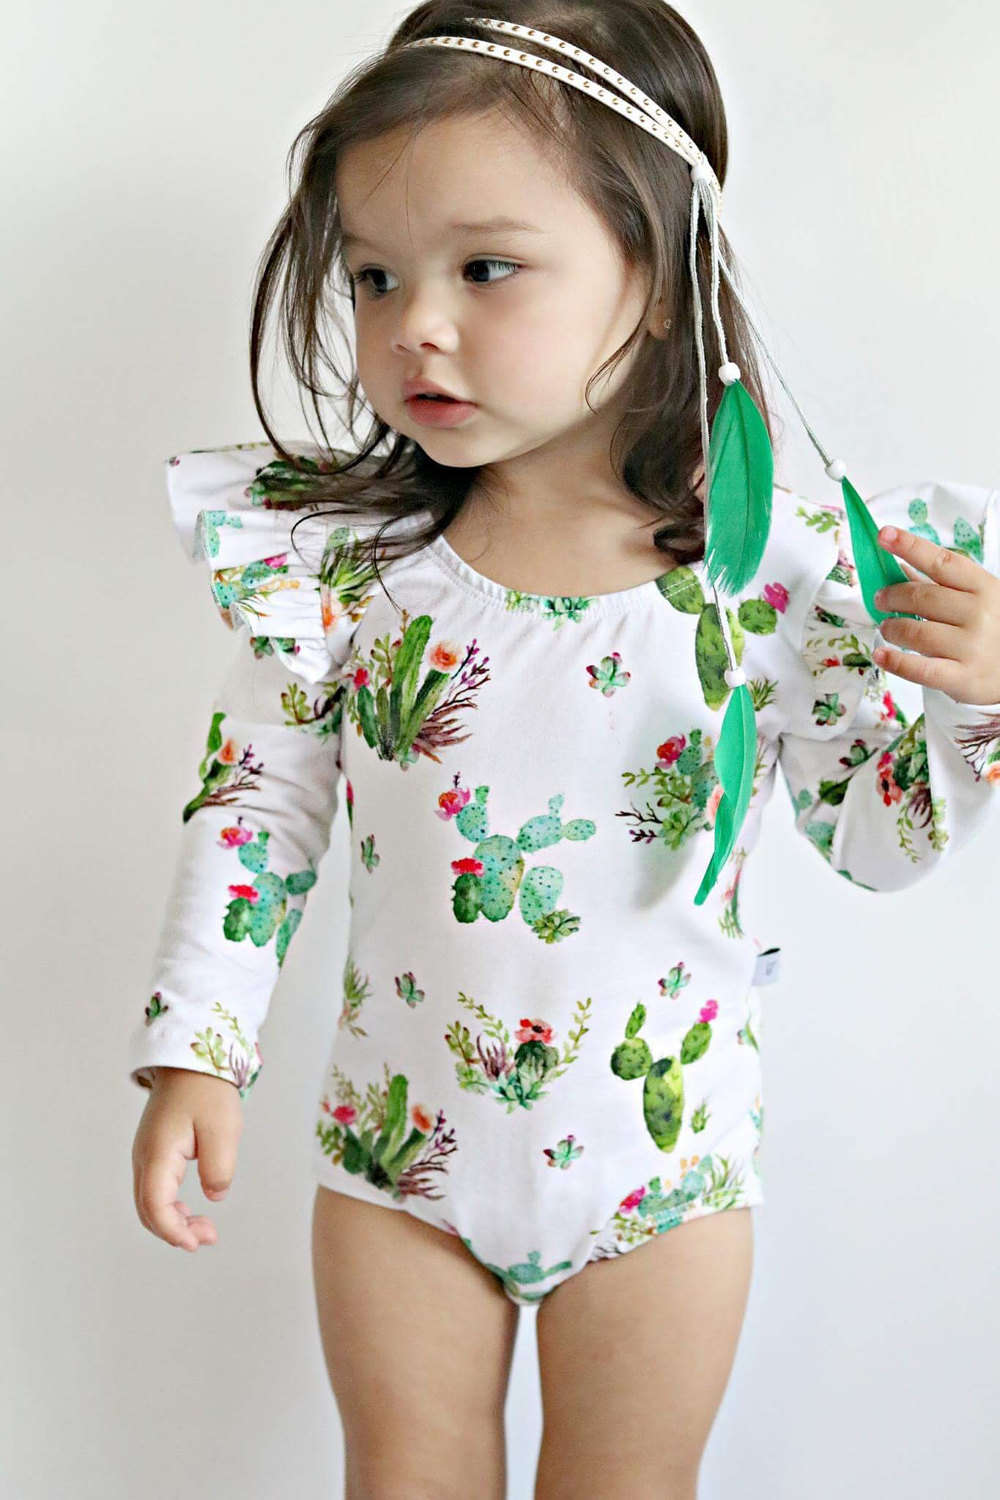 1pc Ballet Leotards for Girls Ballet Dance Leotards Gymnastic Leotard Dance Wear. Features: Soft and comfortable for baby to wear because of excellent materials. Open-crotch design, convinient for bab.